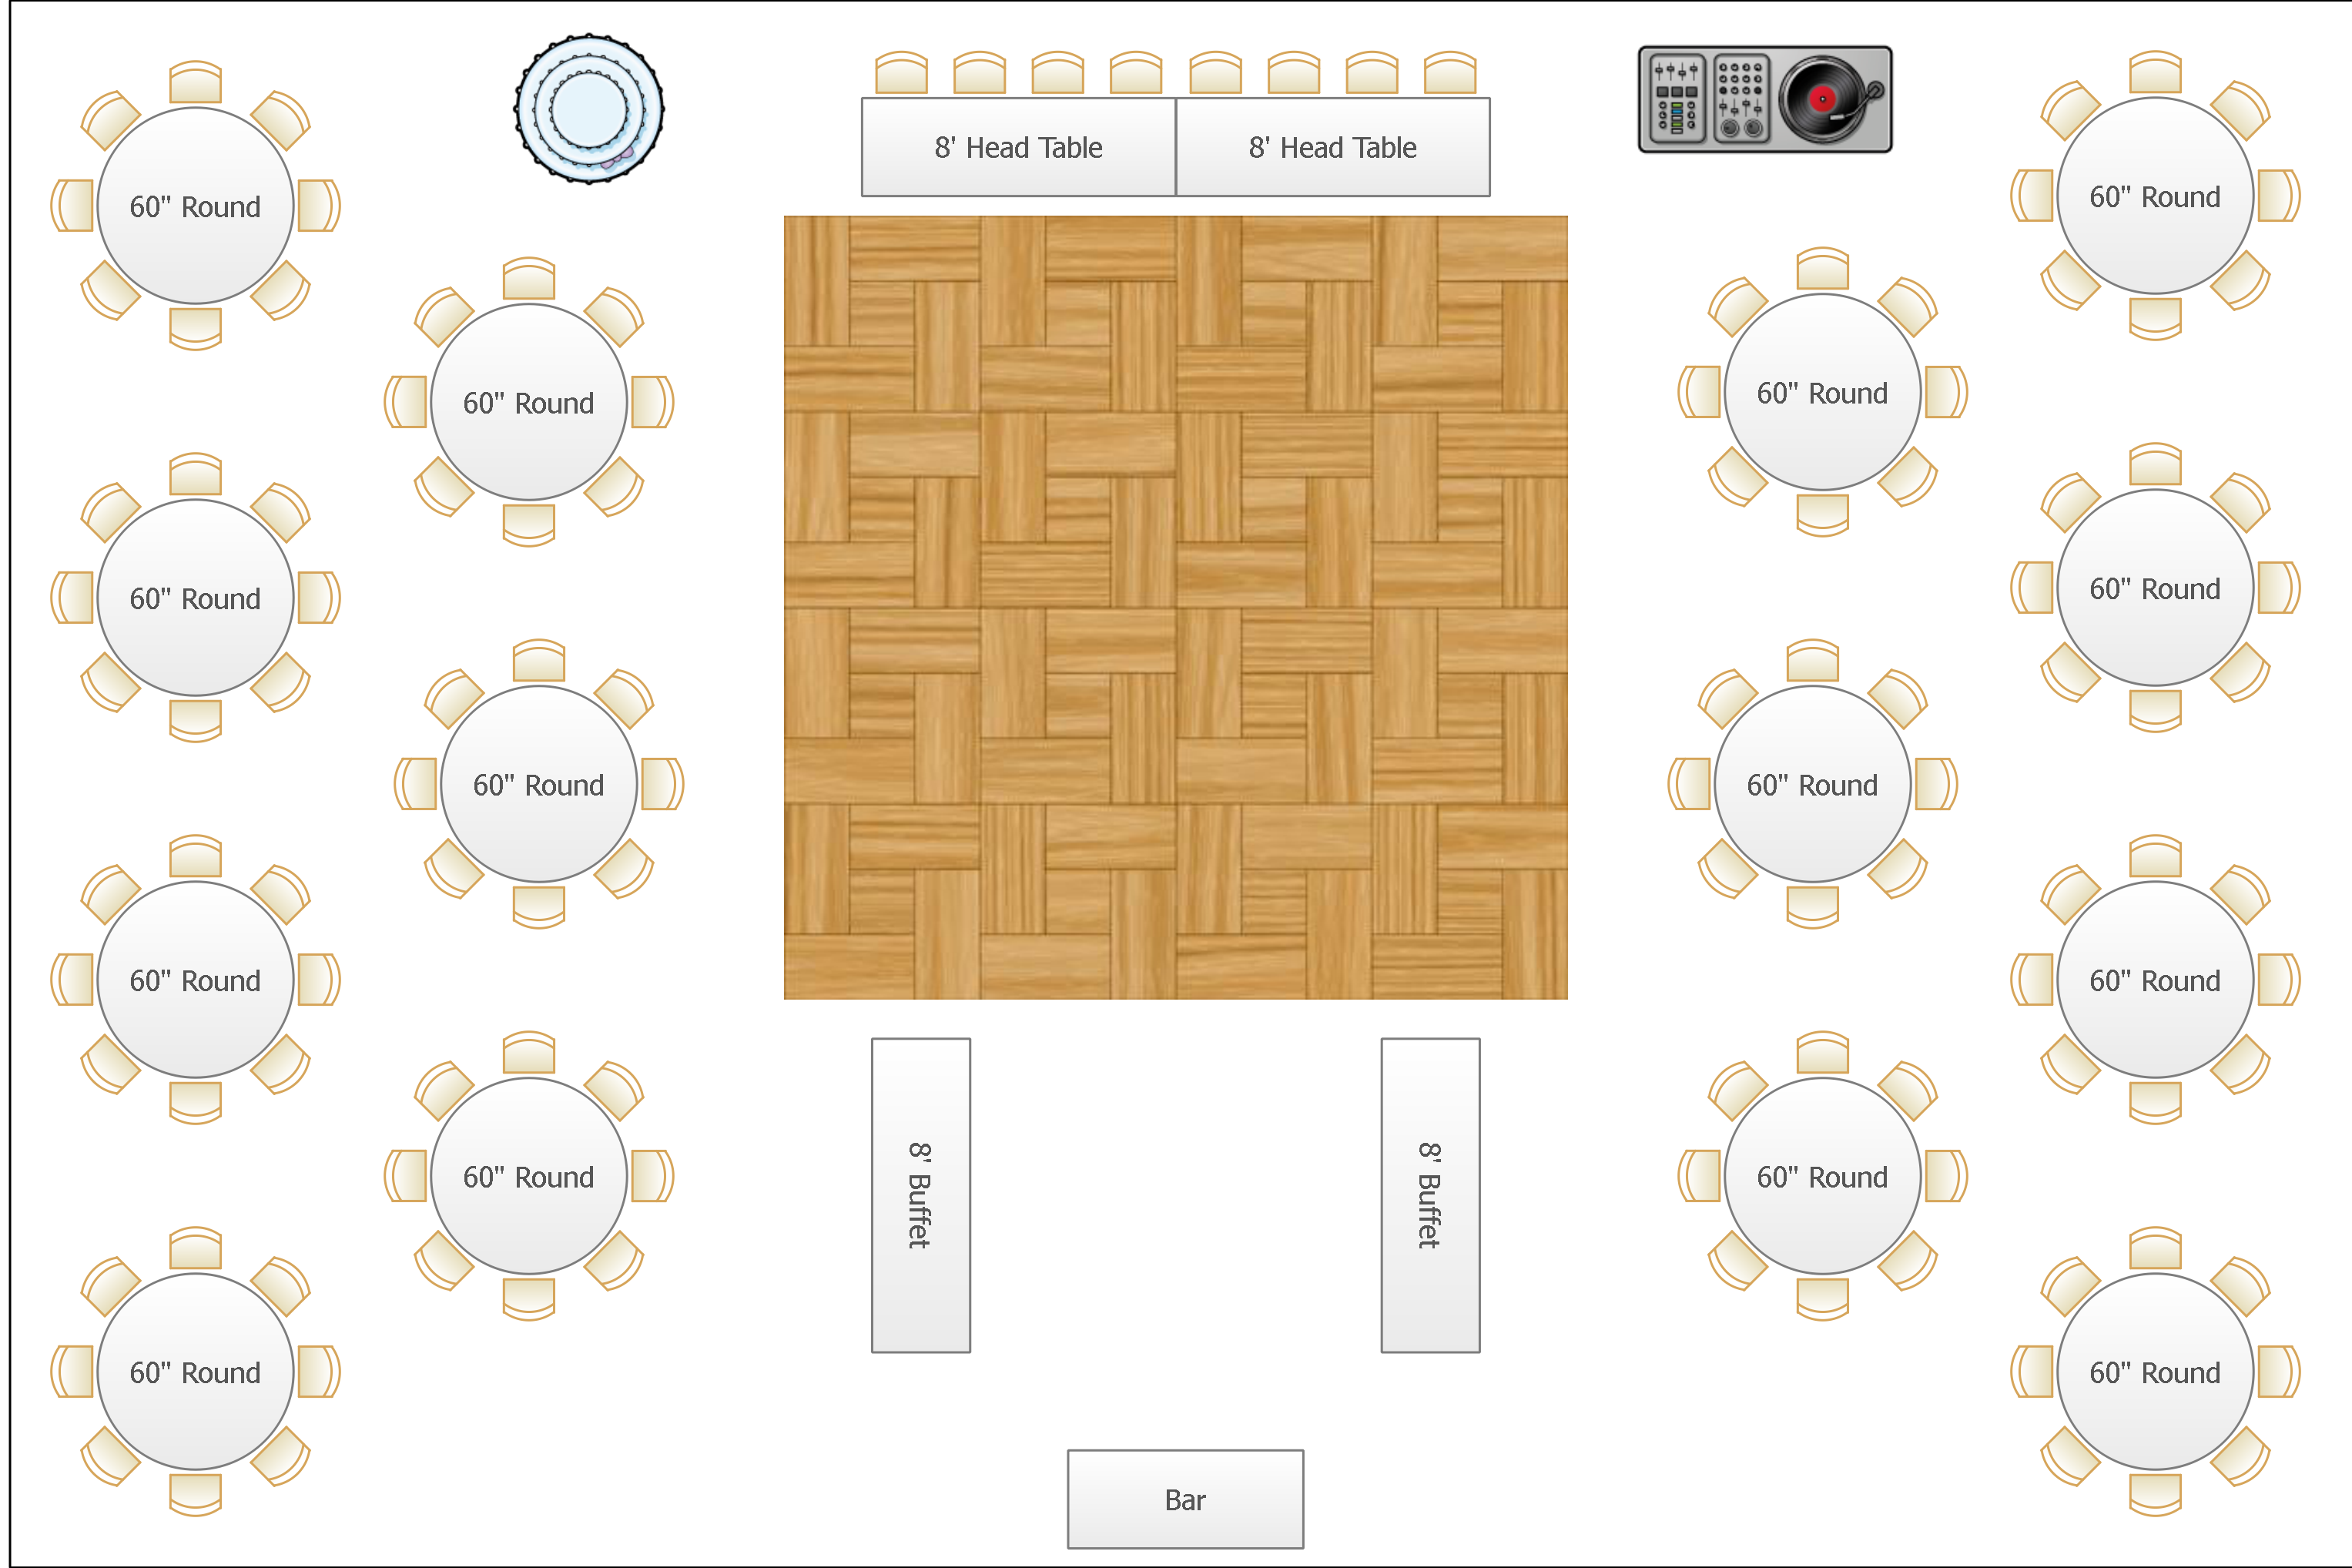 Banquet floor plan software meze blog for Table layout design